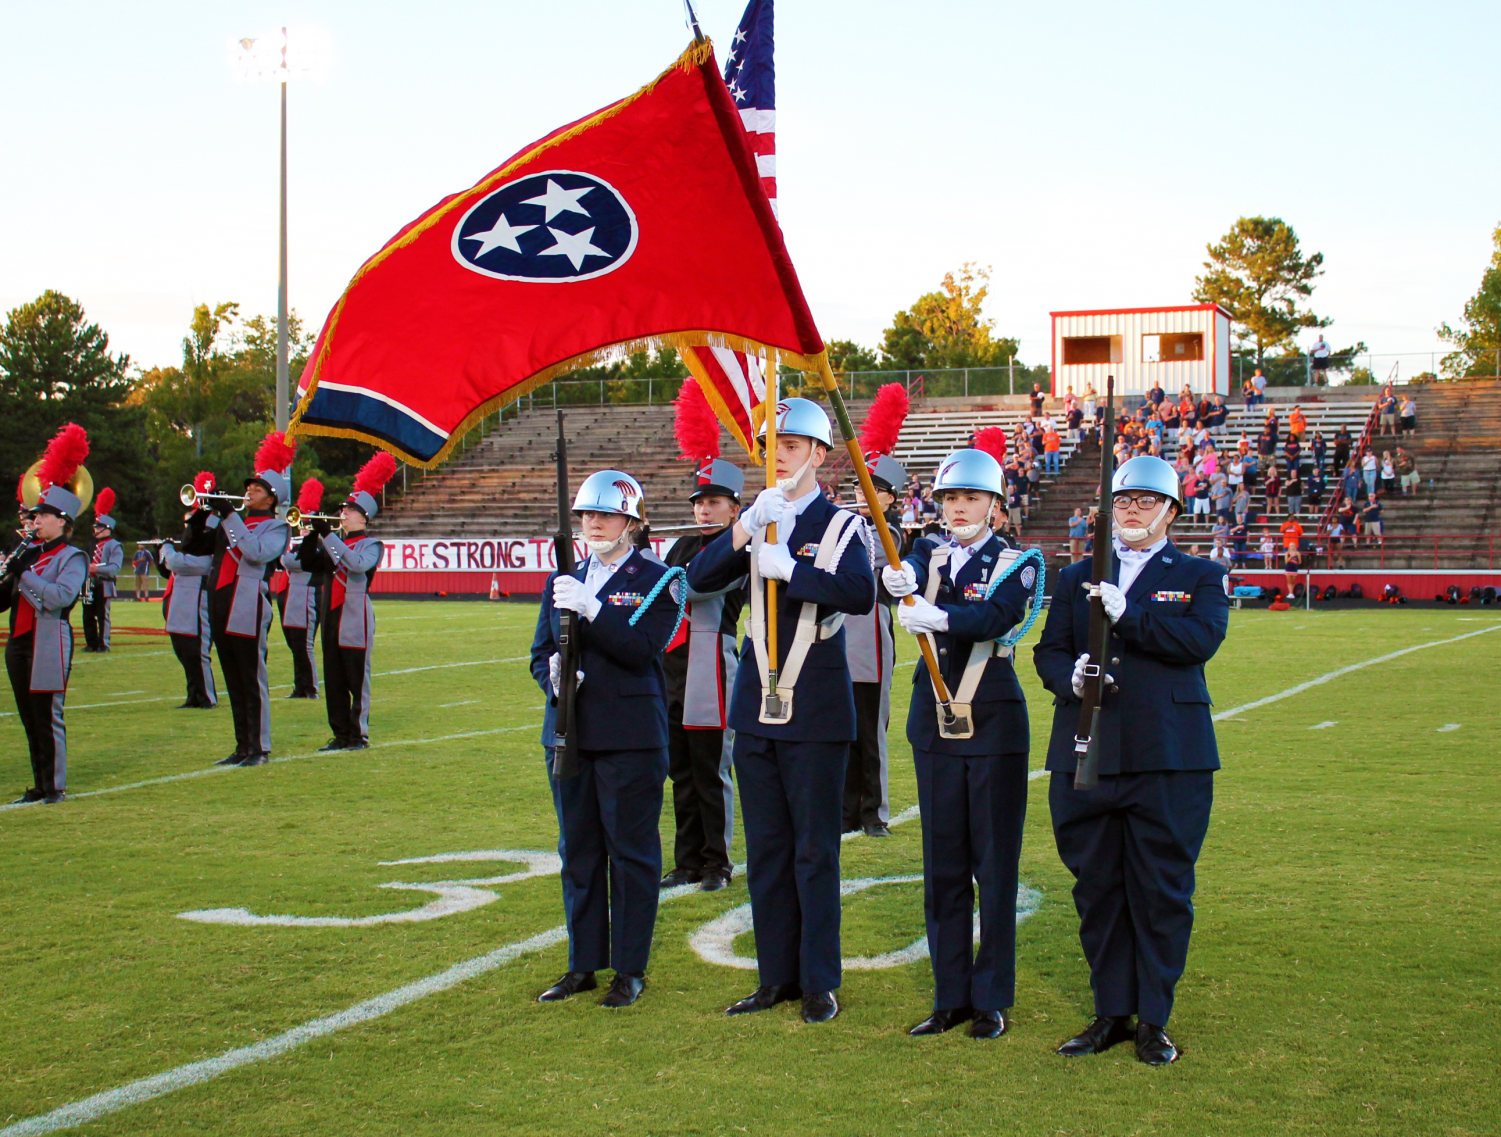 Left to right cadets Madison Cox, Oren Harper, Kinsey York, and Tabby Syferd presenting the colors at a football game